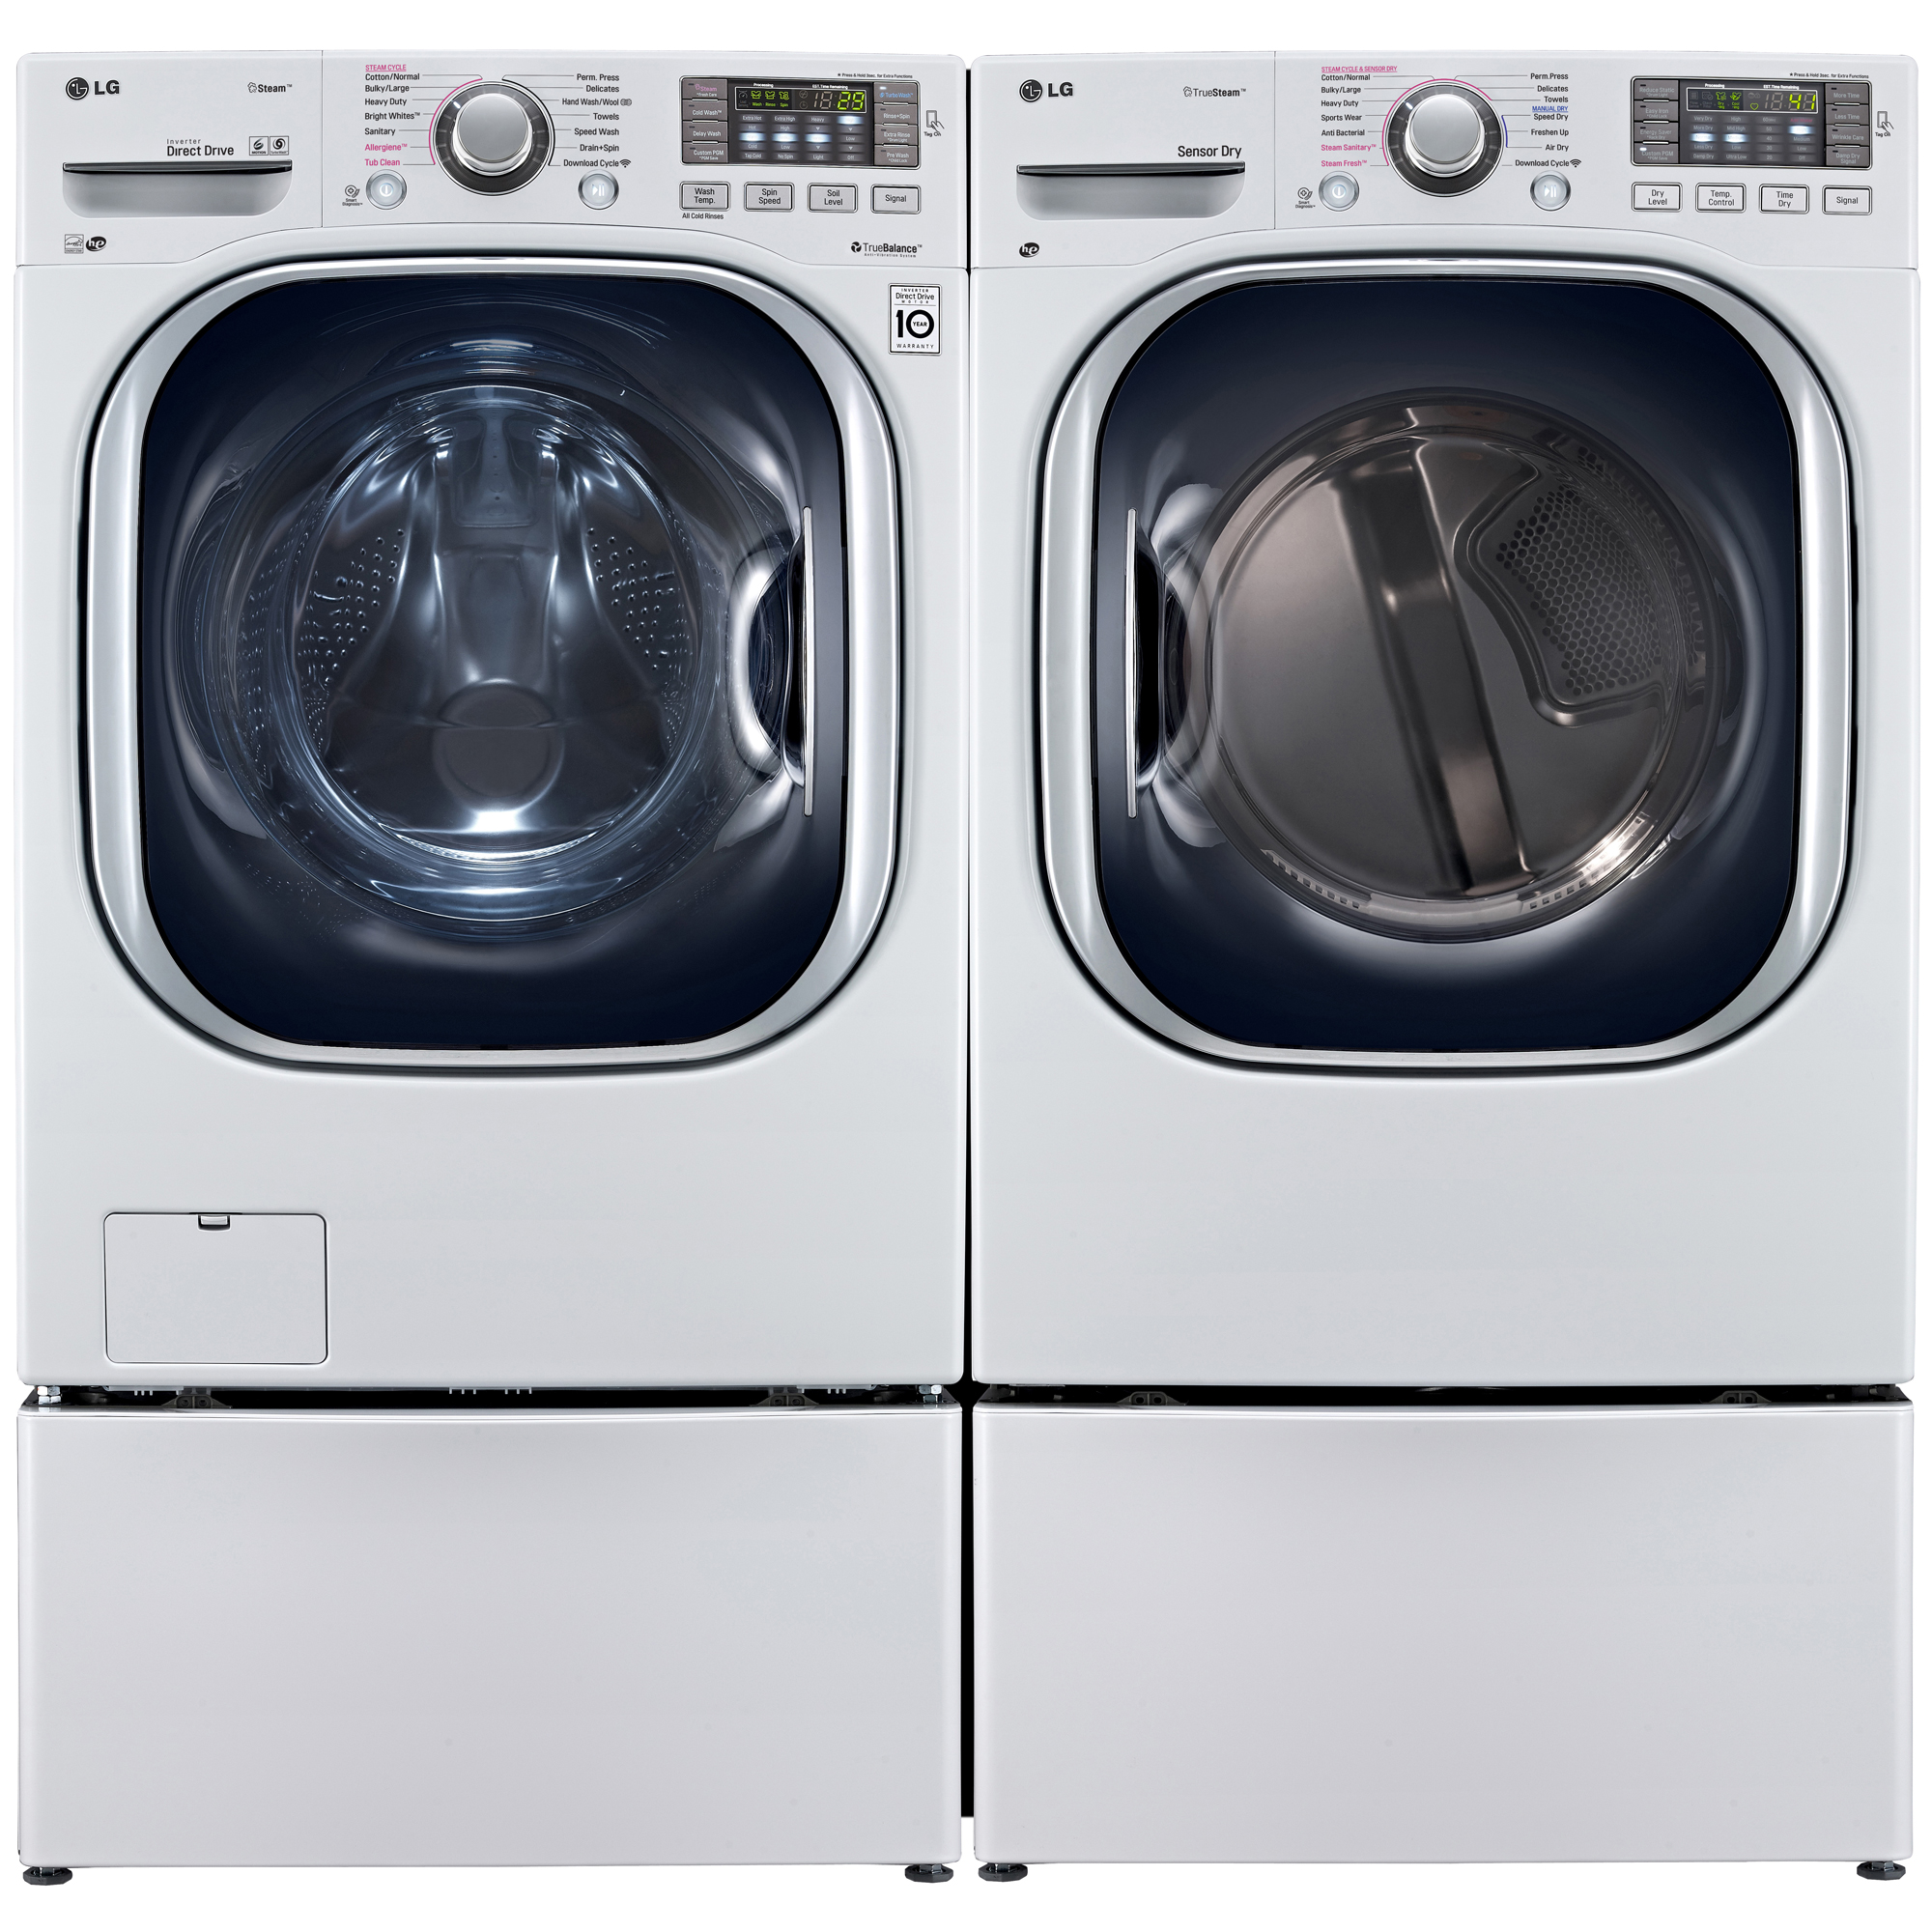 Sears Washer And Dryer Canada Lg Wm4270hwa 4 5 Cu Ft Front Load Washer W Turbowash Technology White